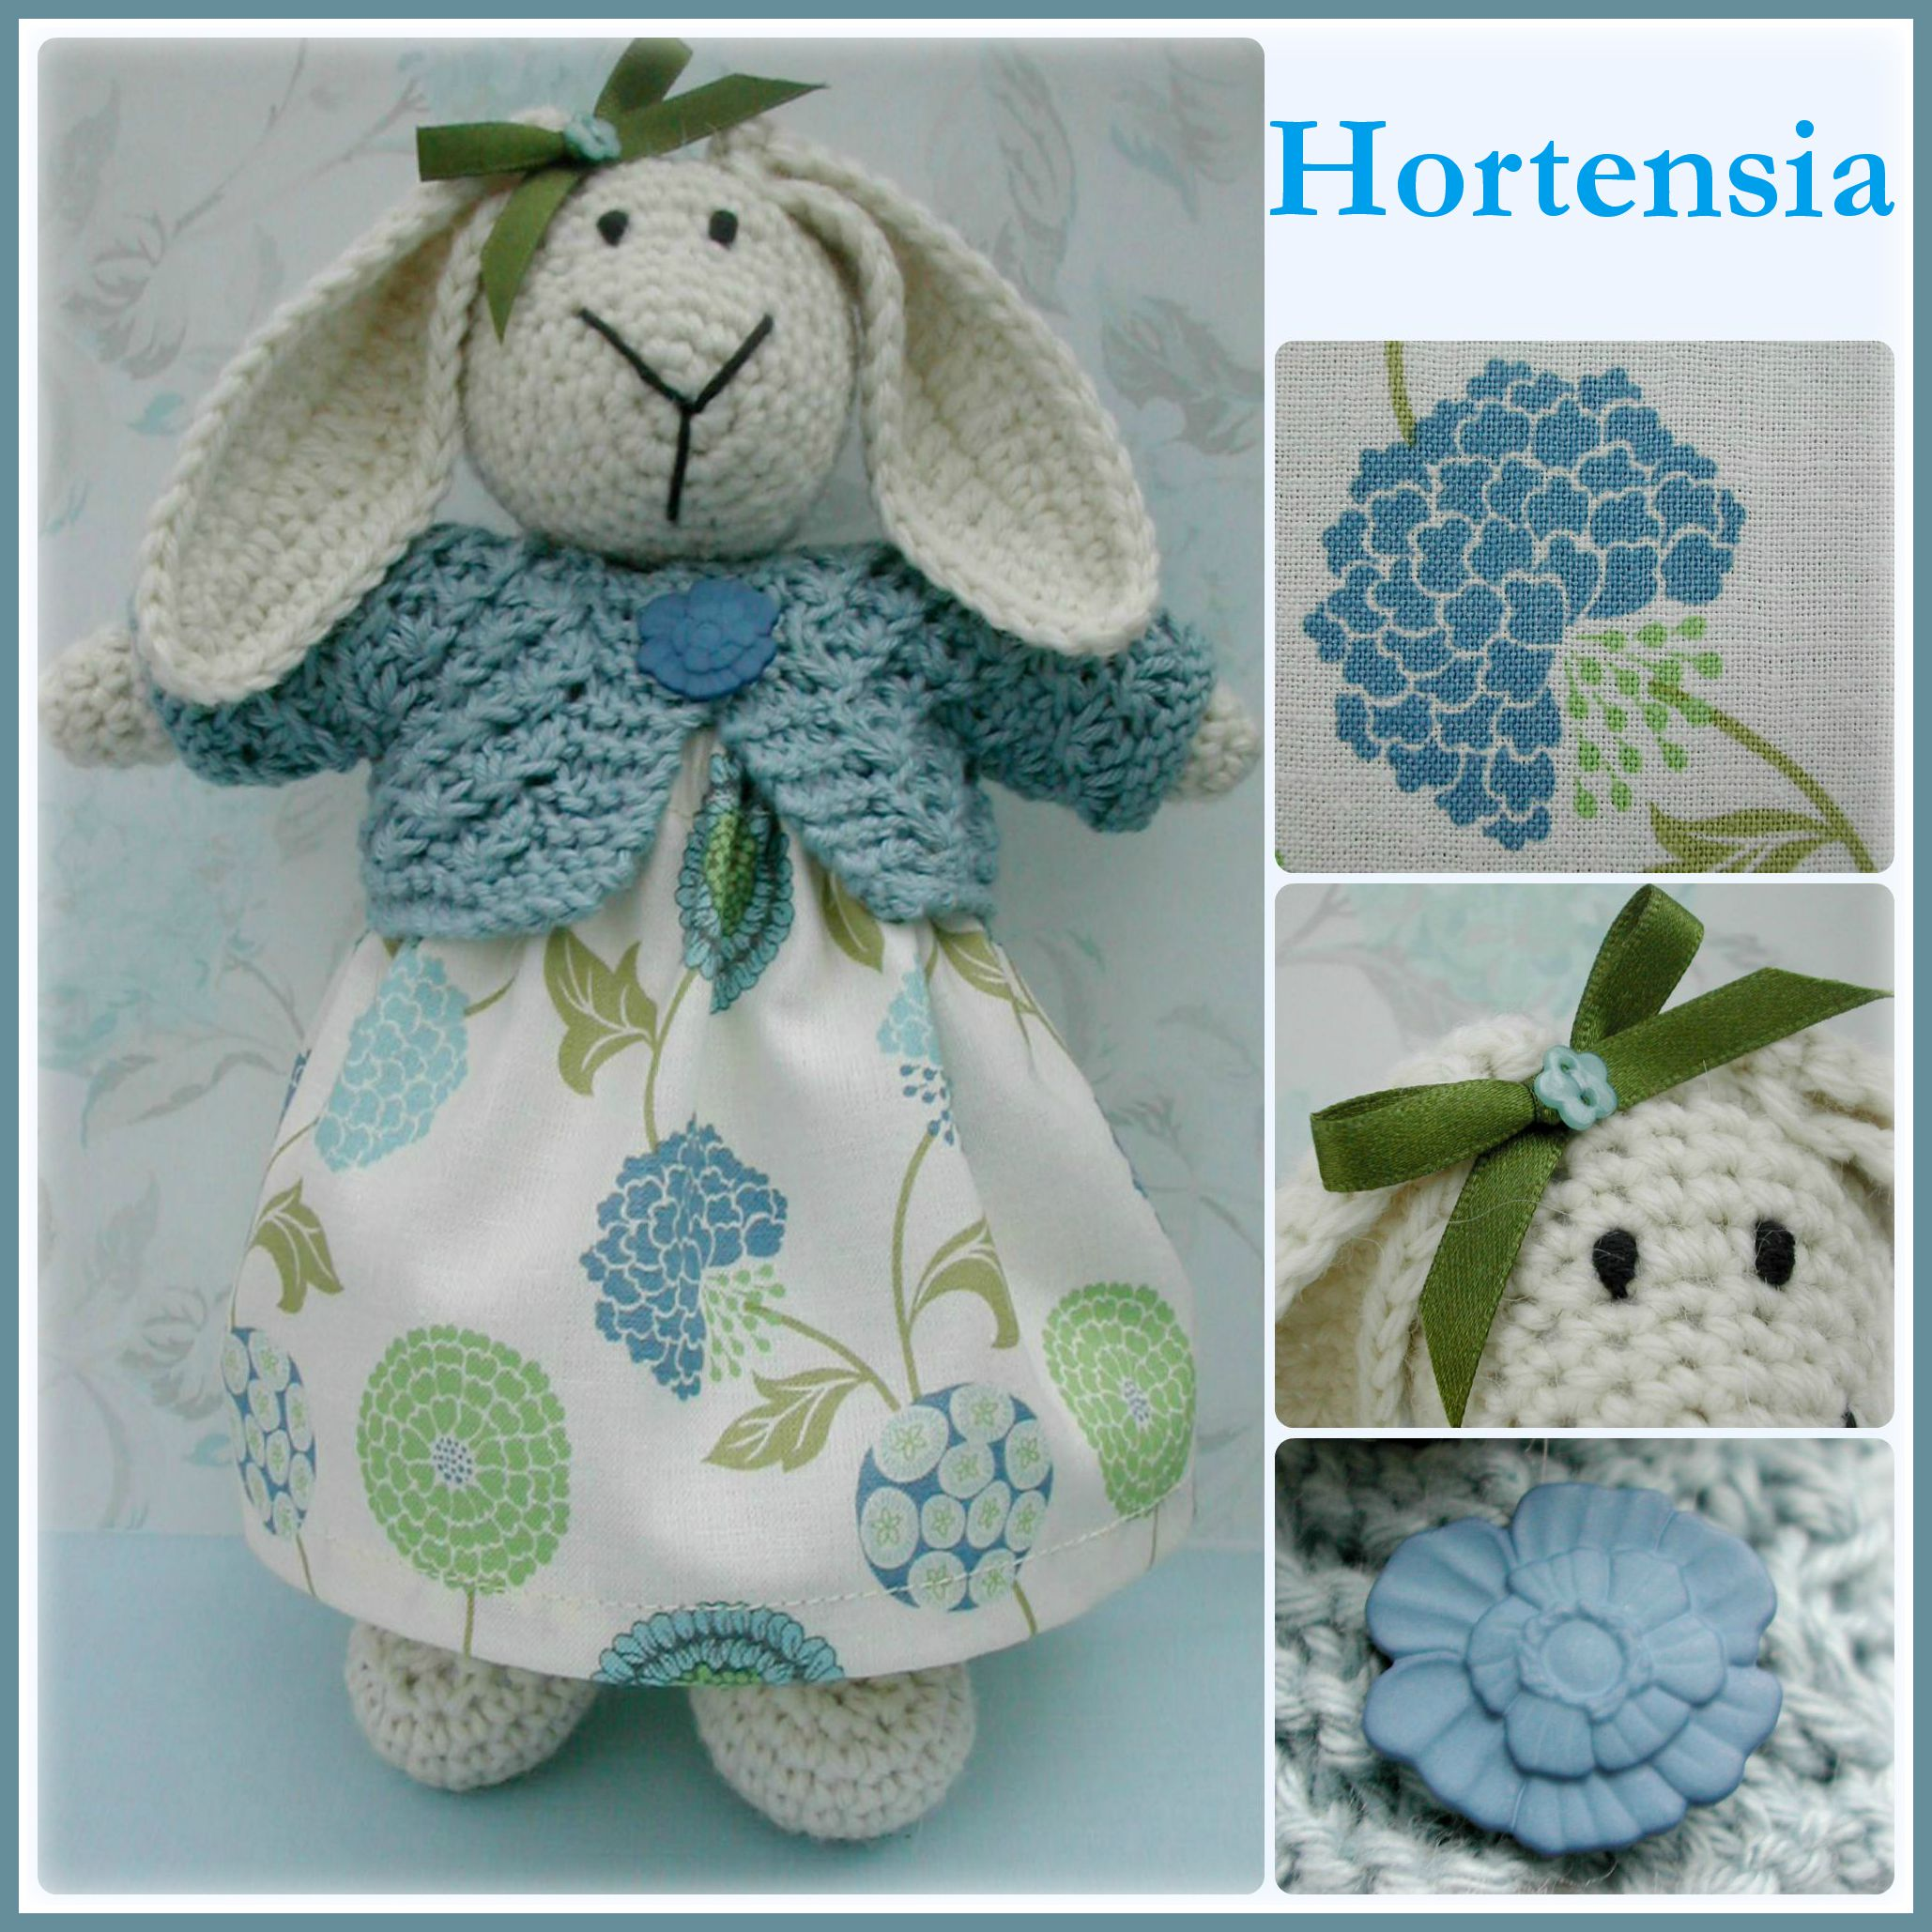 Hortensia Collage